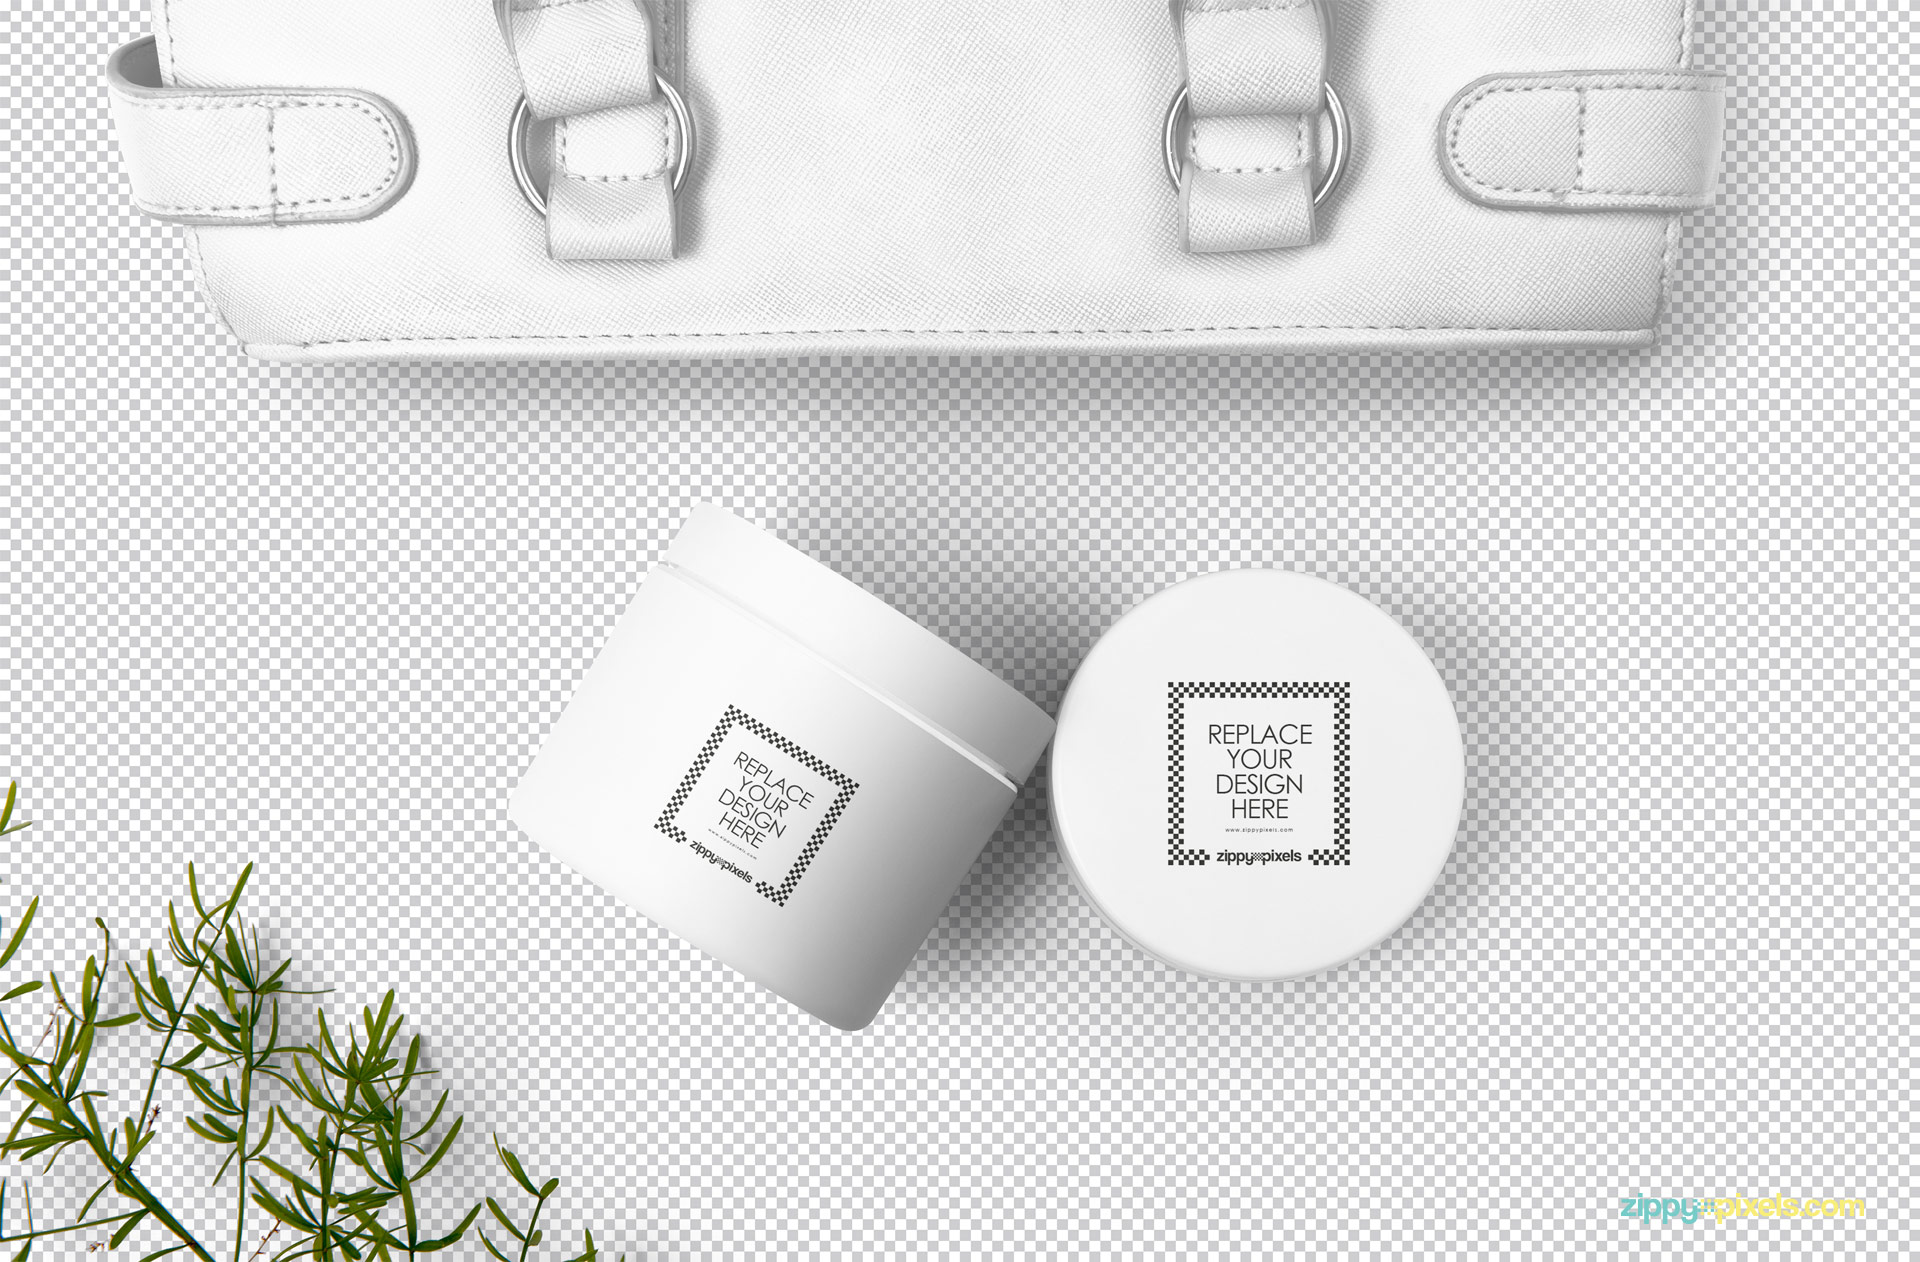 Editable cosmetic jar mockup with easily replaceable design option.